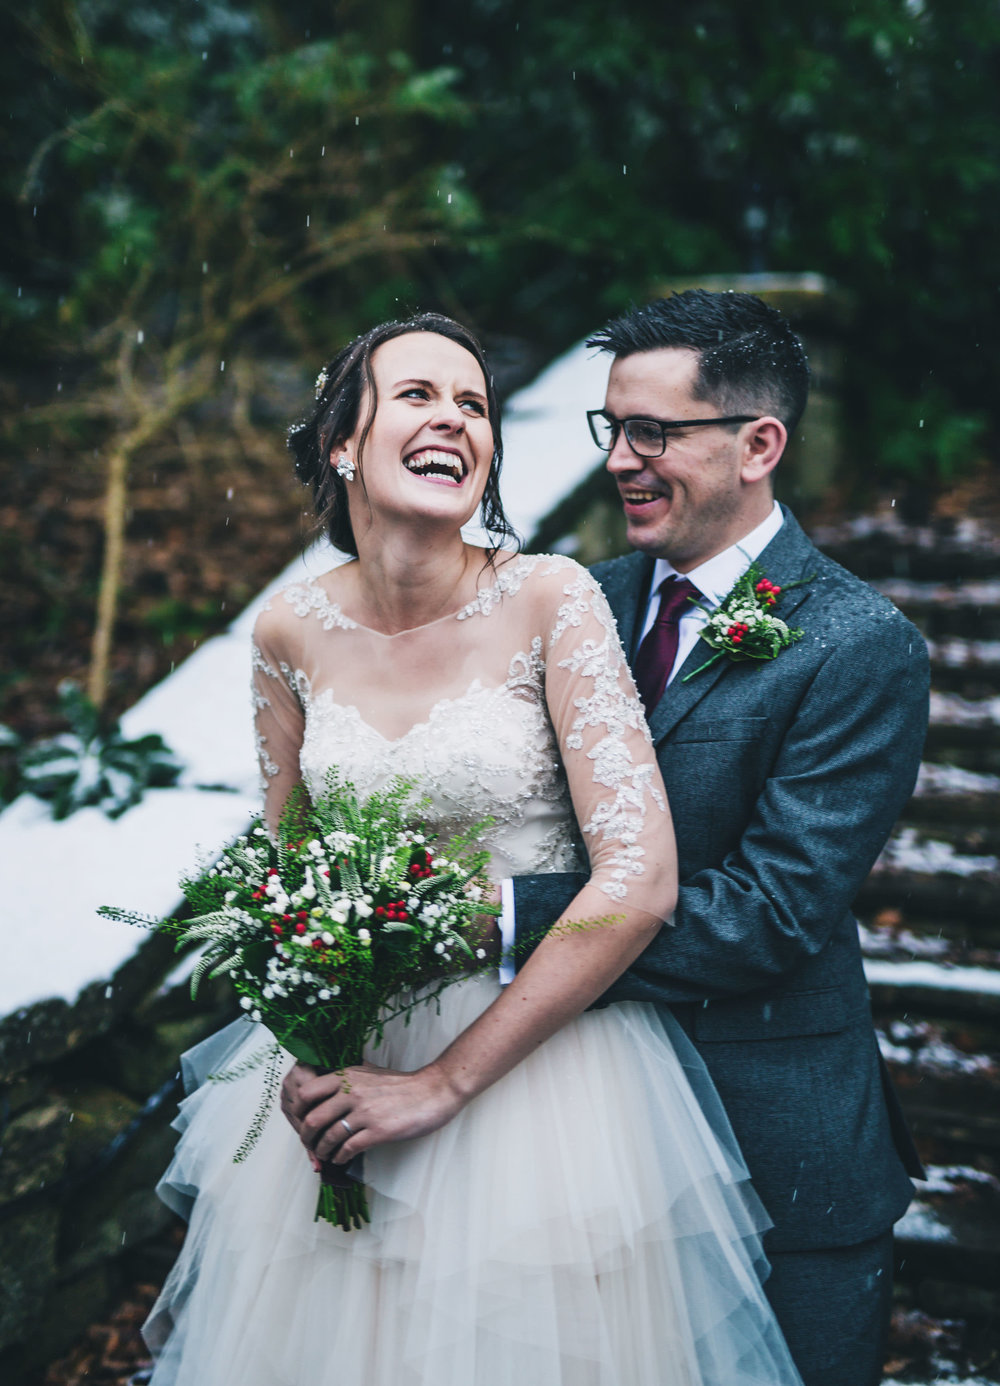 Laughter from the bride and groom. Wedding photographer Lancashire.